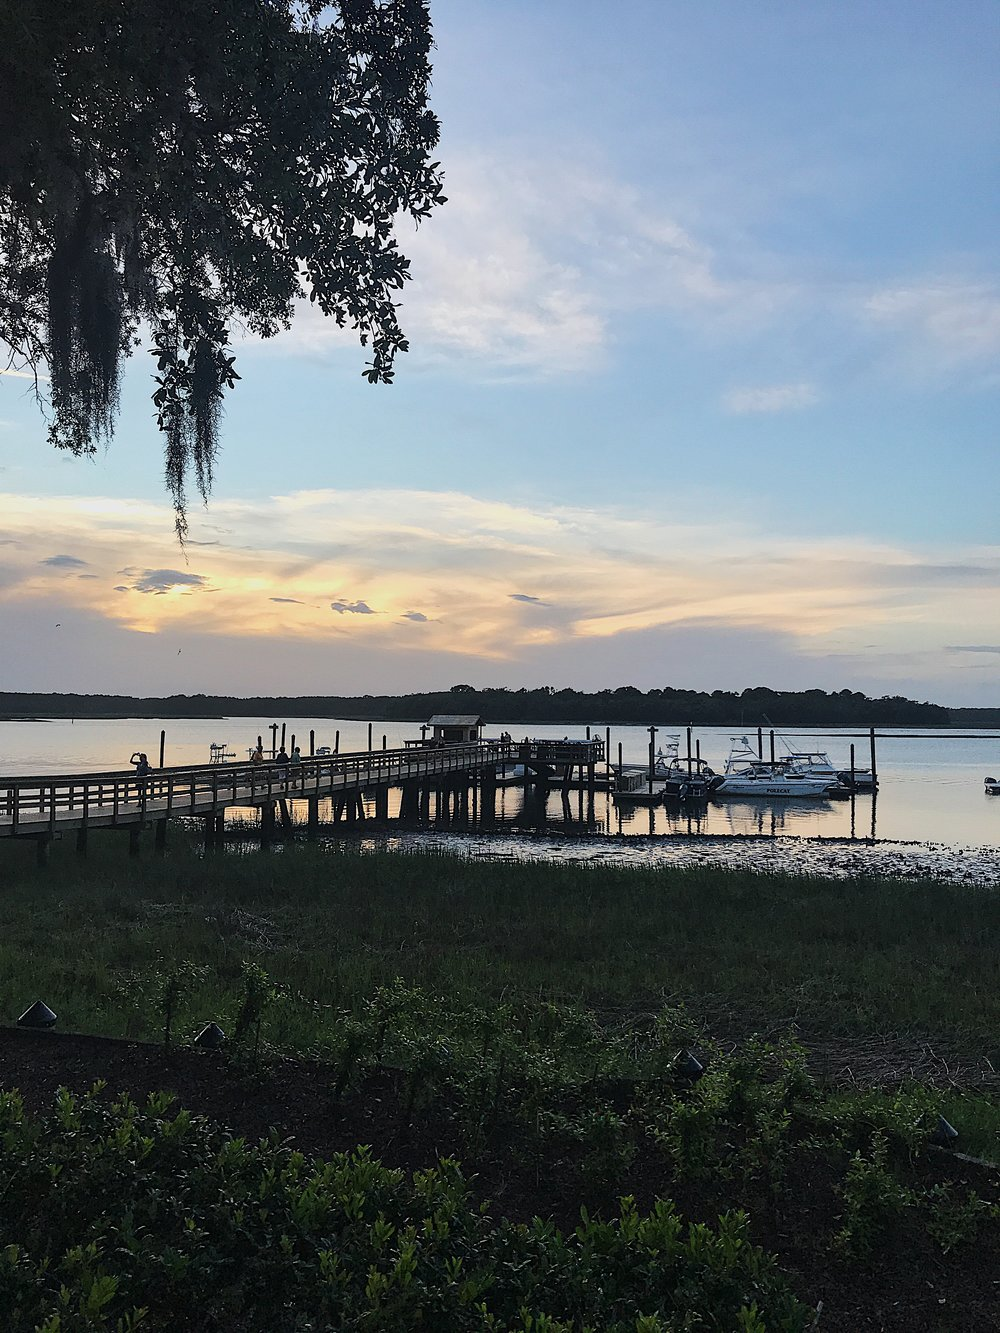 Sunset view from Skull Creek Boathouse